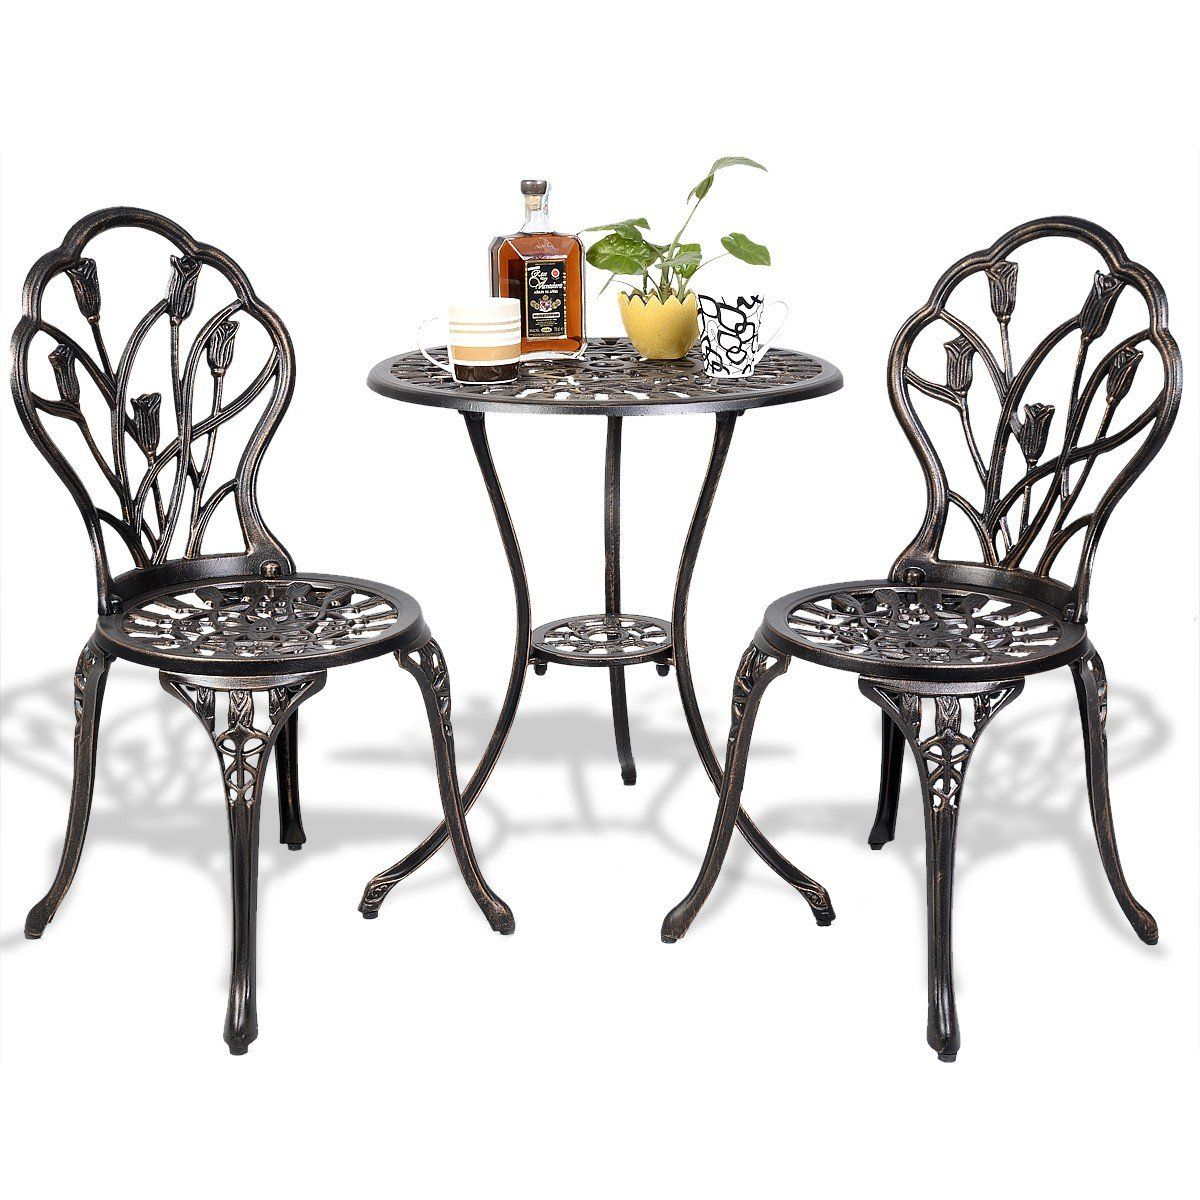 3 Pcs Cast Aluminum Outdoor Table And Chair Set Products In 2019